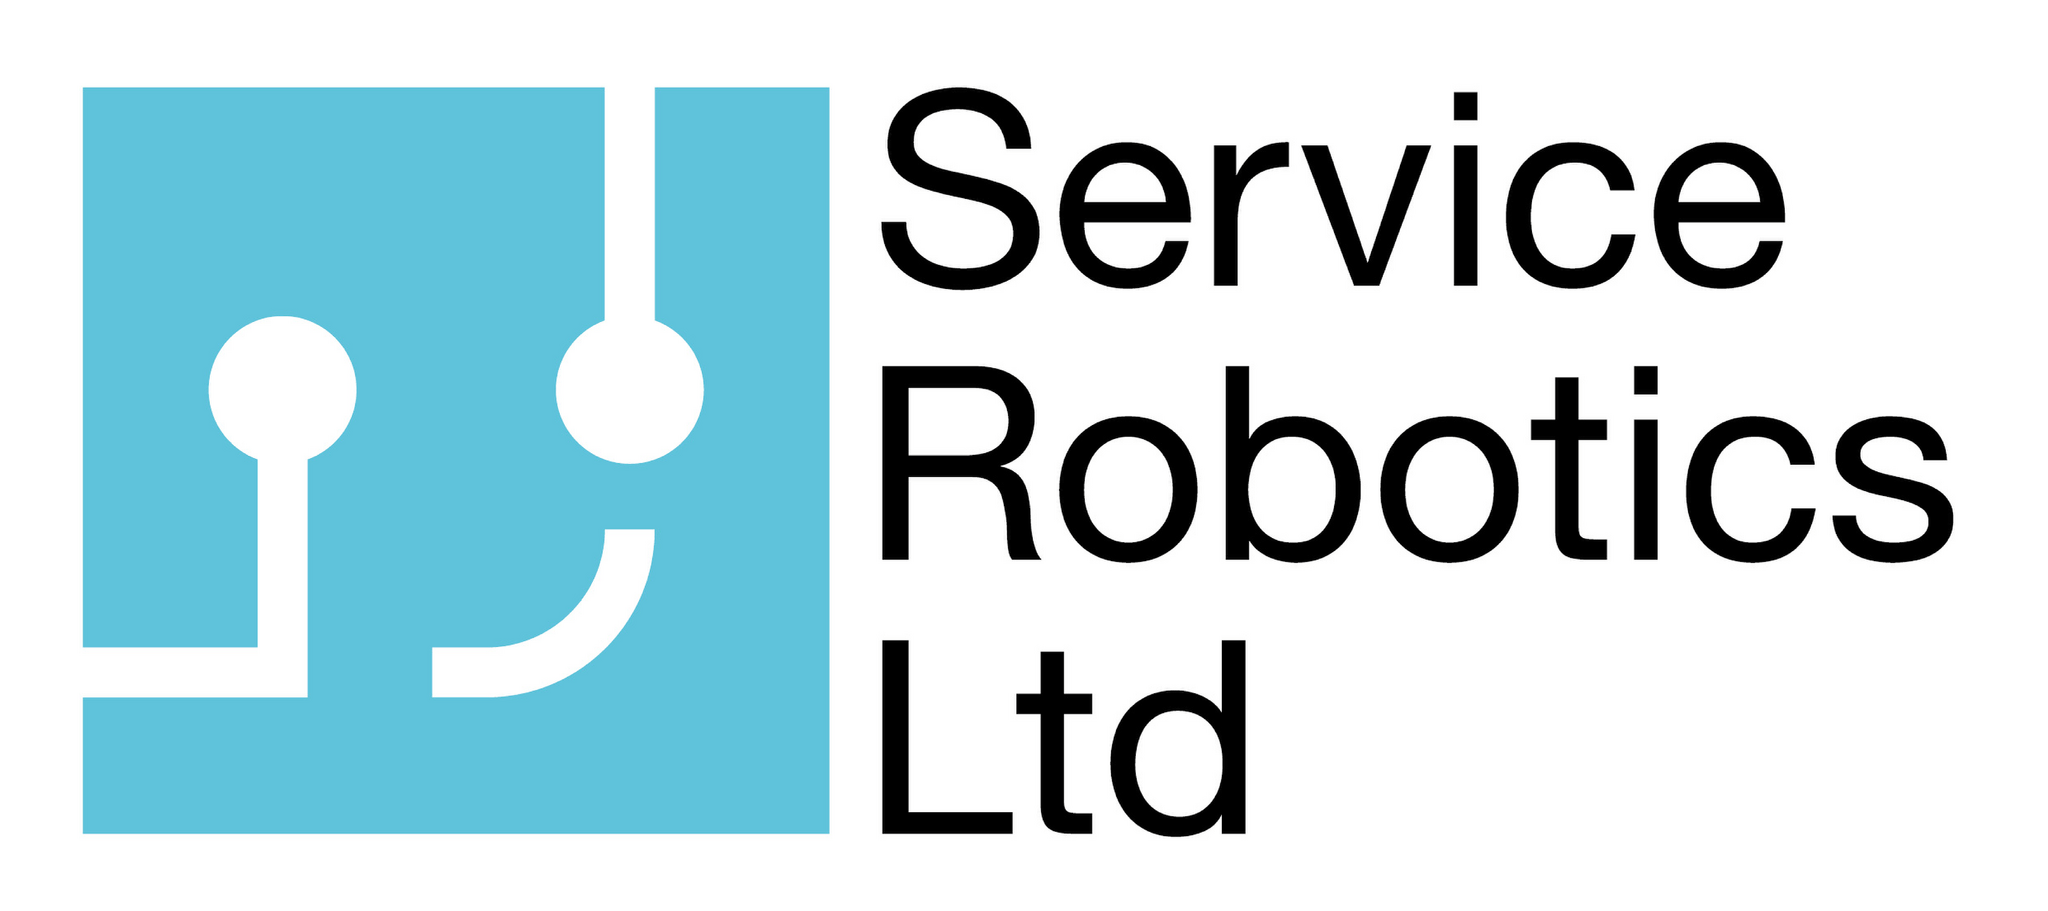 Service Robotics Ltd